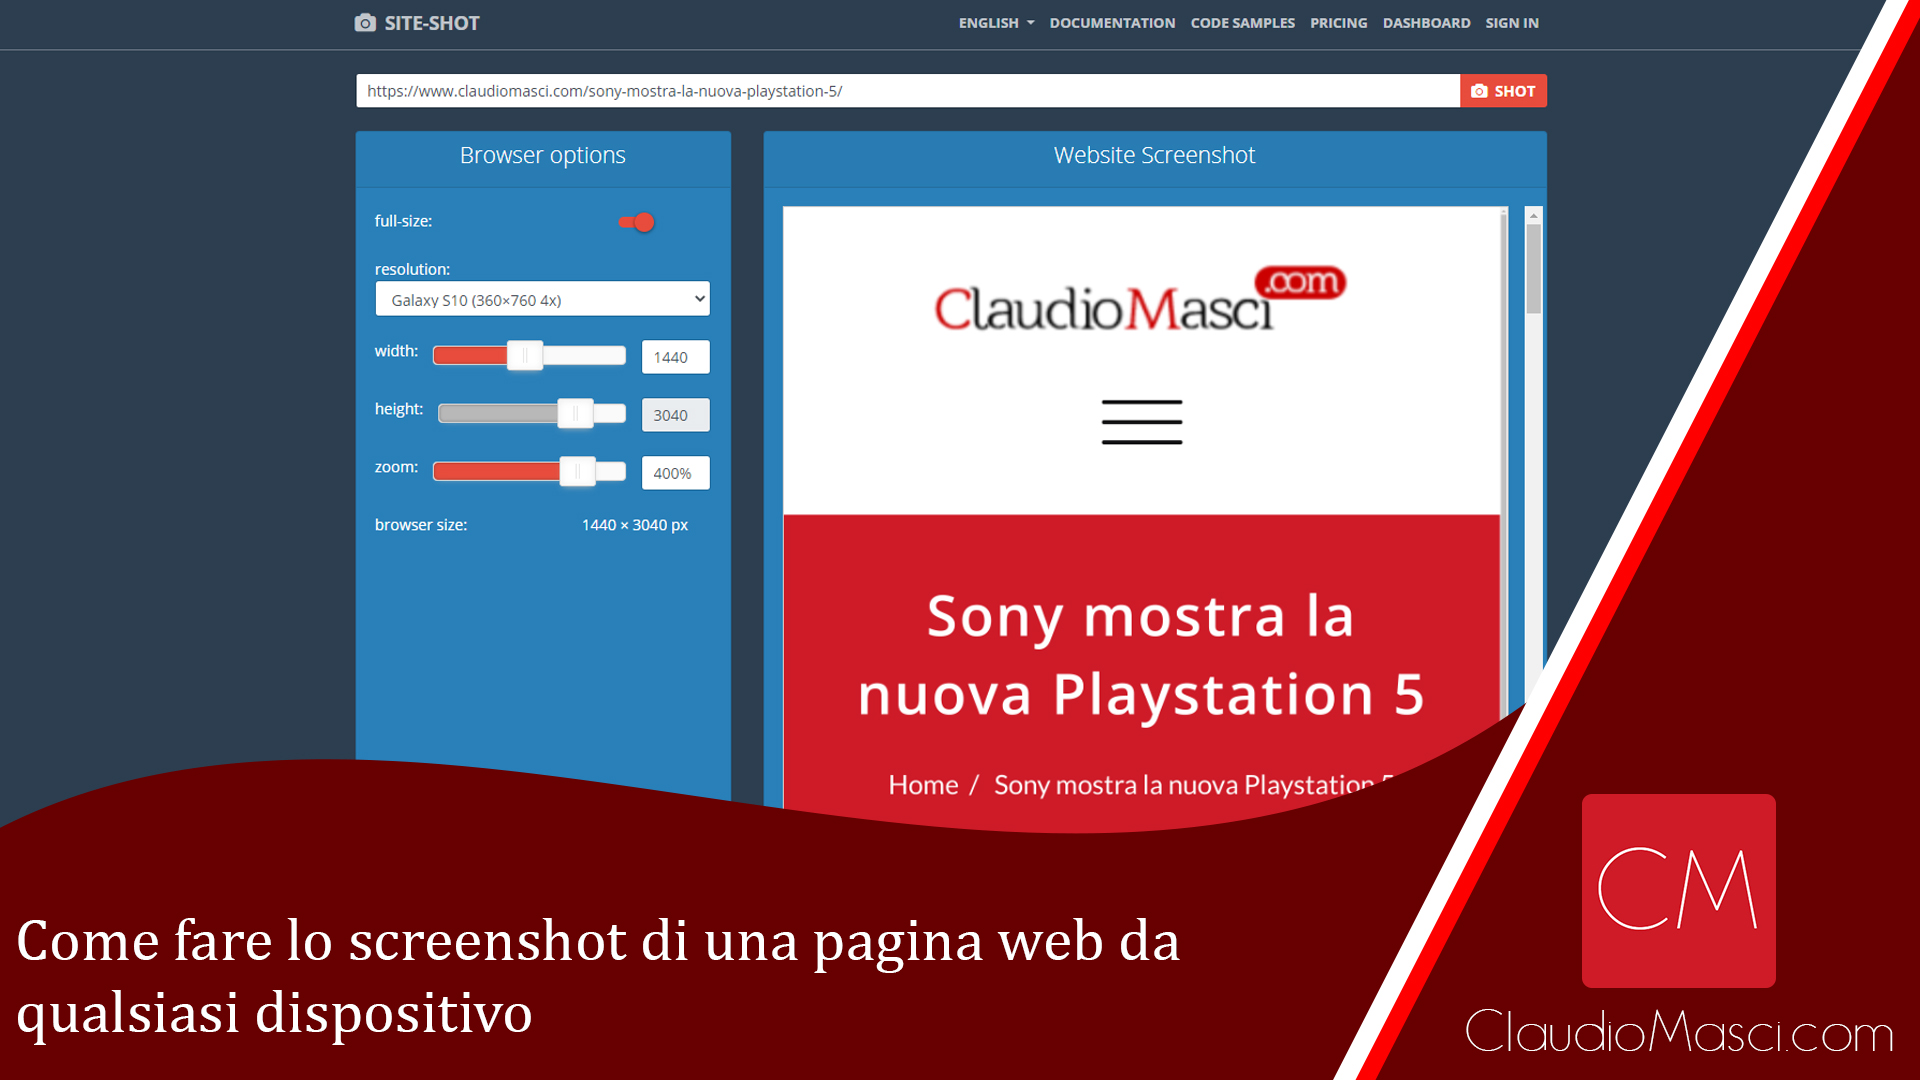 Come fare lo screenshot di una pagina web da qualsiasi dispositivo